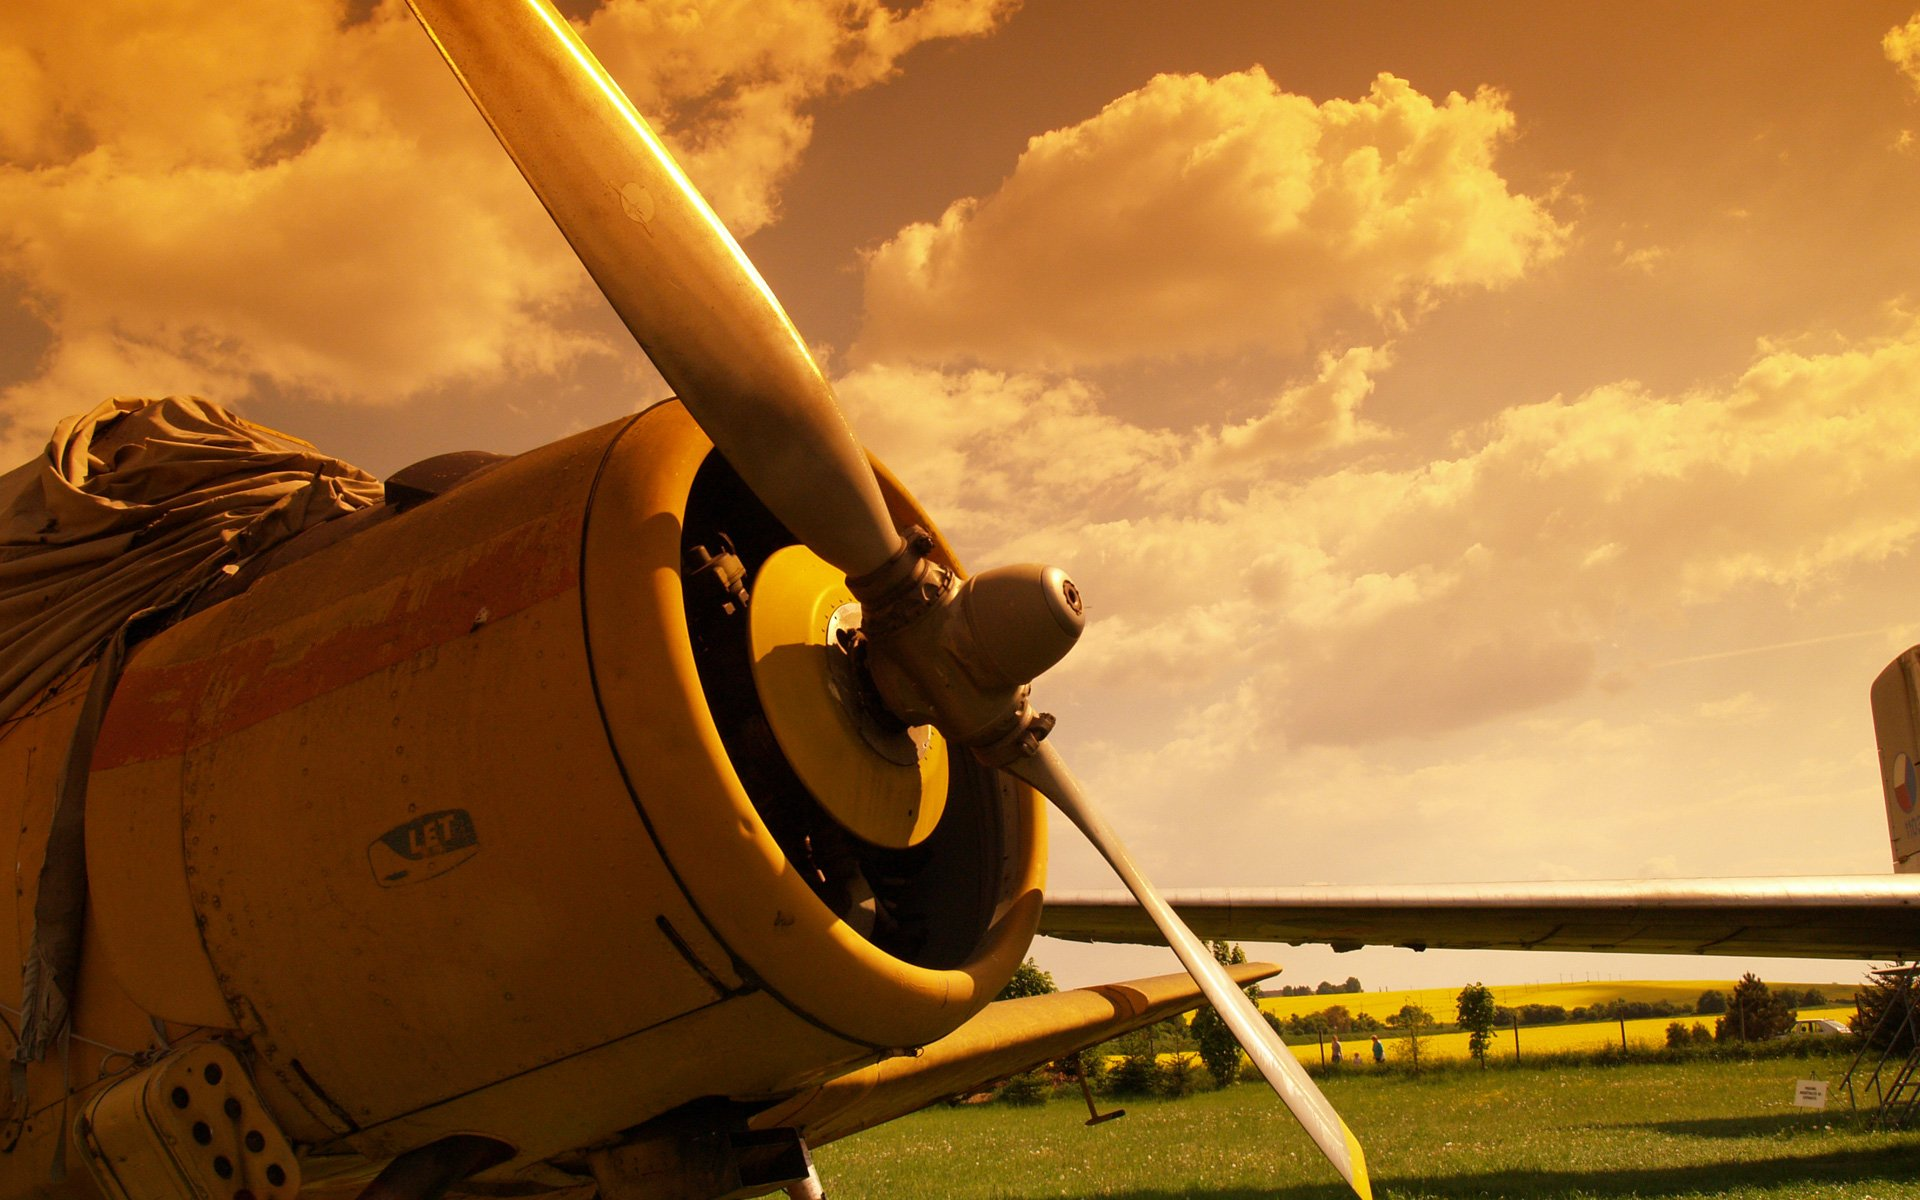 Commercial Pilot Wallpaper Hd 10 Awesome Hd Aviation Propeller Wallpapers